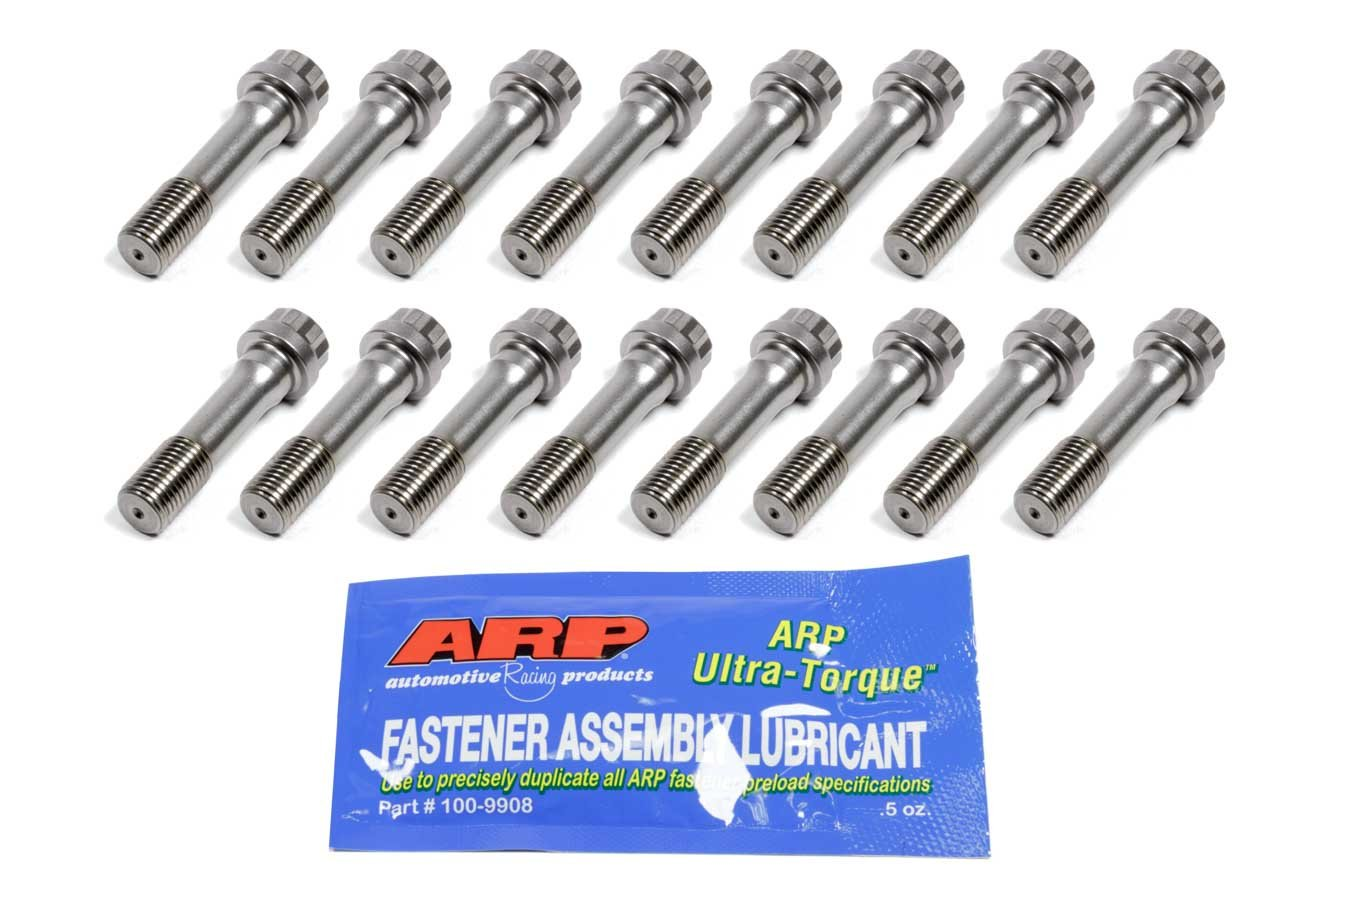 Eagle Specialty Products 14020 7/16' x 1.75' ARP L19 Connecting Rod Bolt 4.5129G